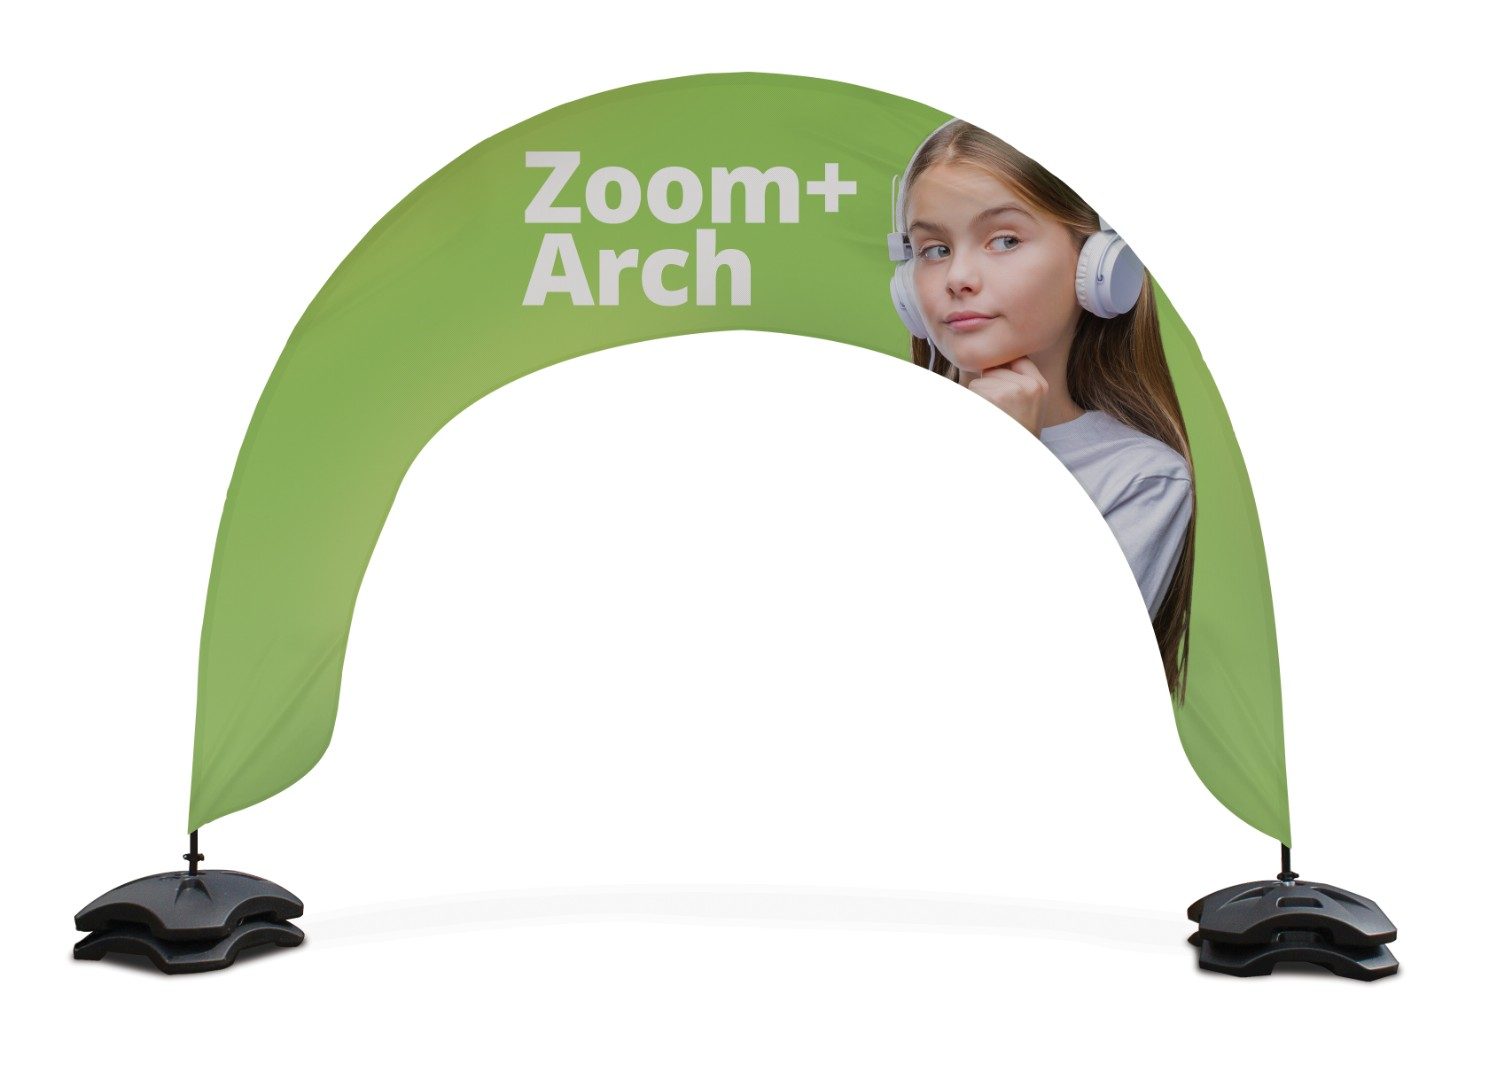 Zoom+ Arch Outdoor Event Banner